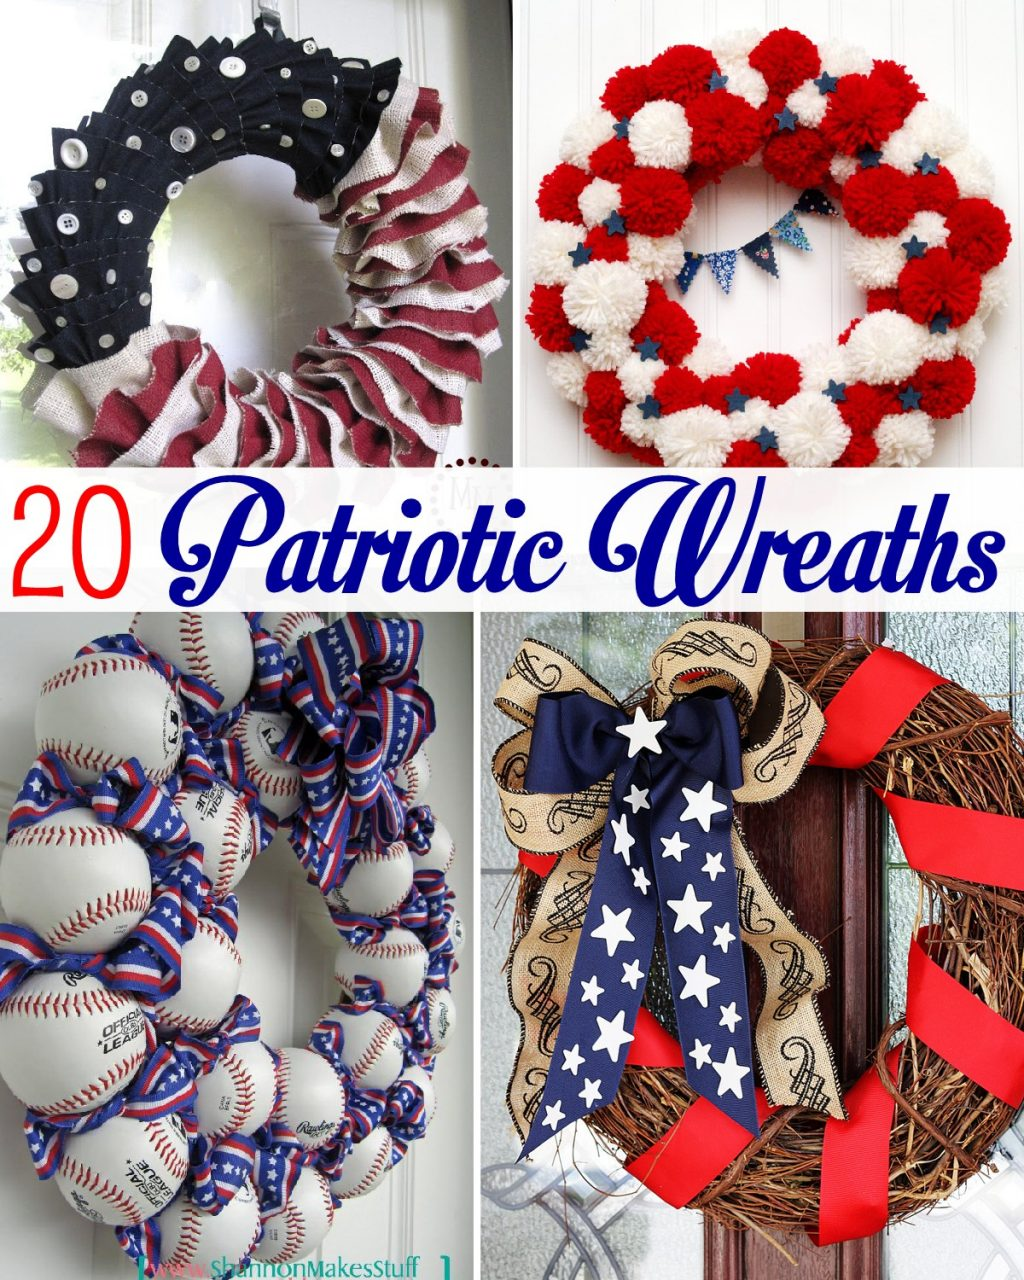 20 patriotic wreaths the scrap shoppe for Americana crafts to make